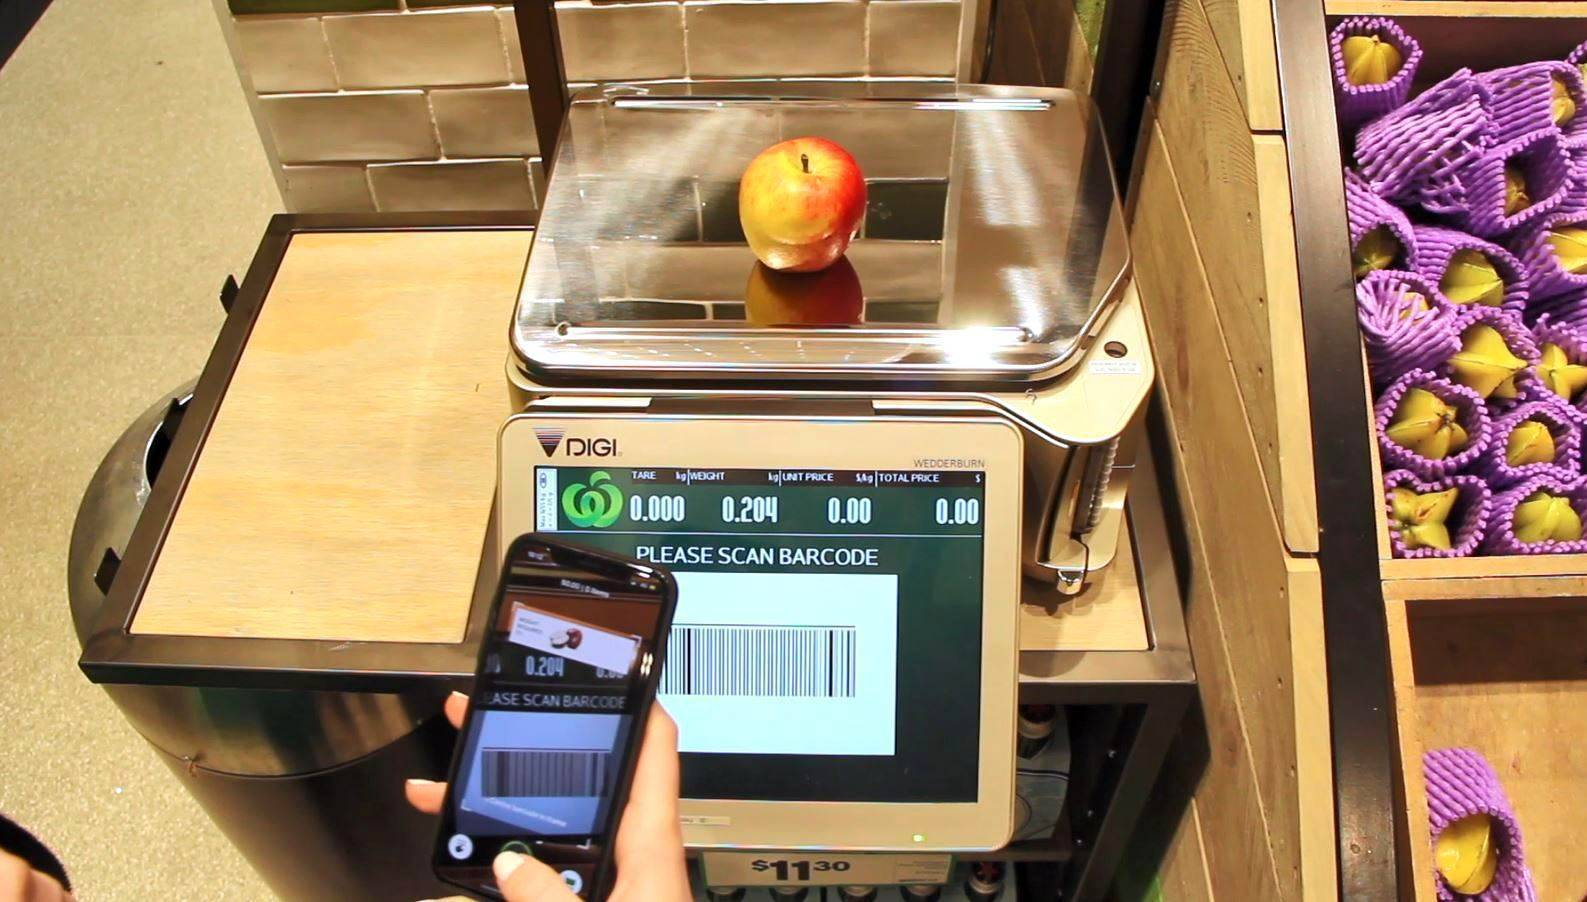 Woolworths trials 'scan and go' smartphone shopping - Finance